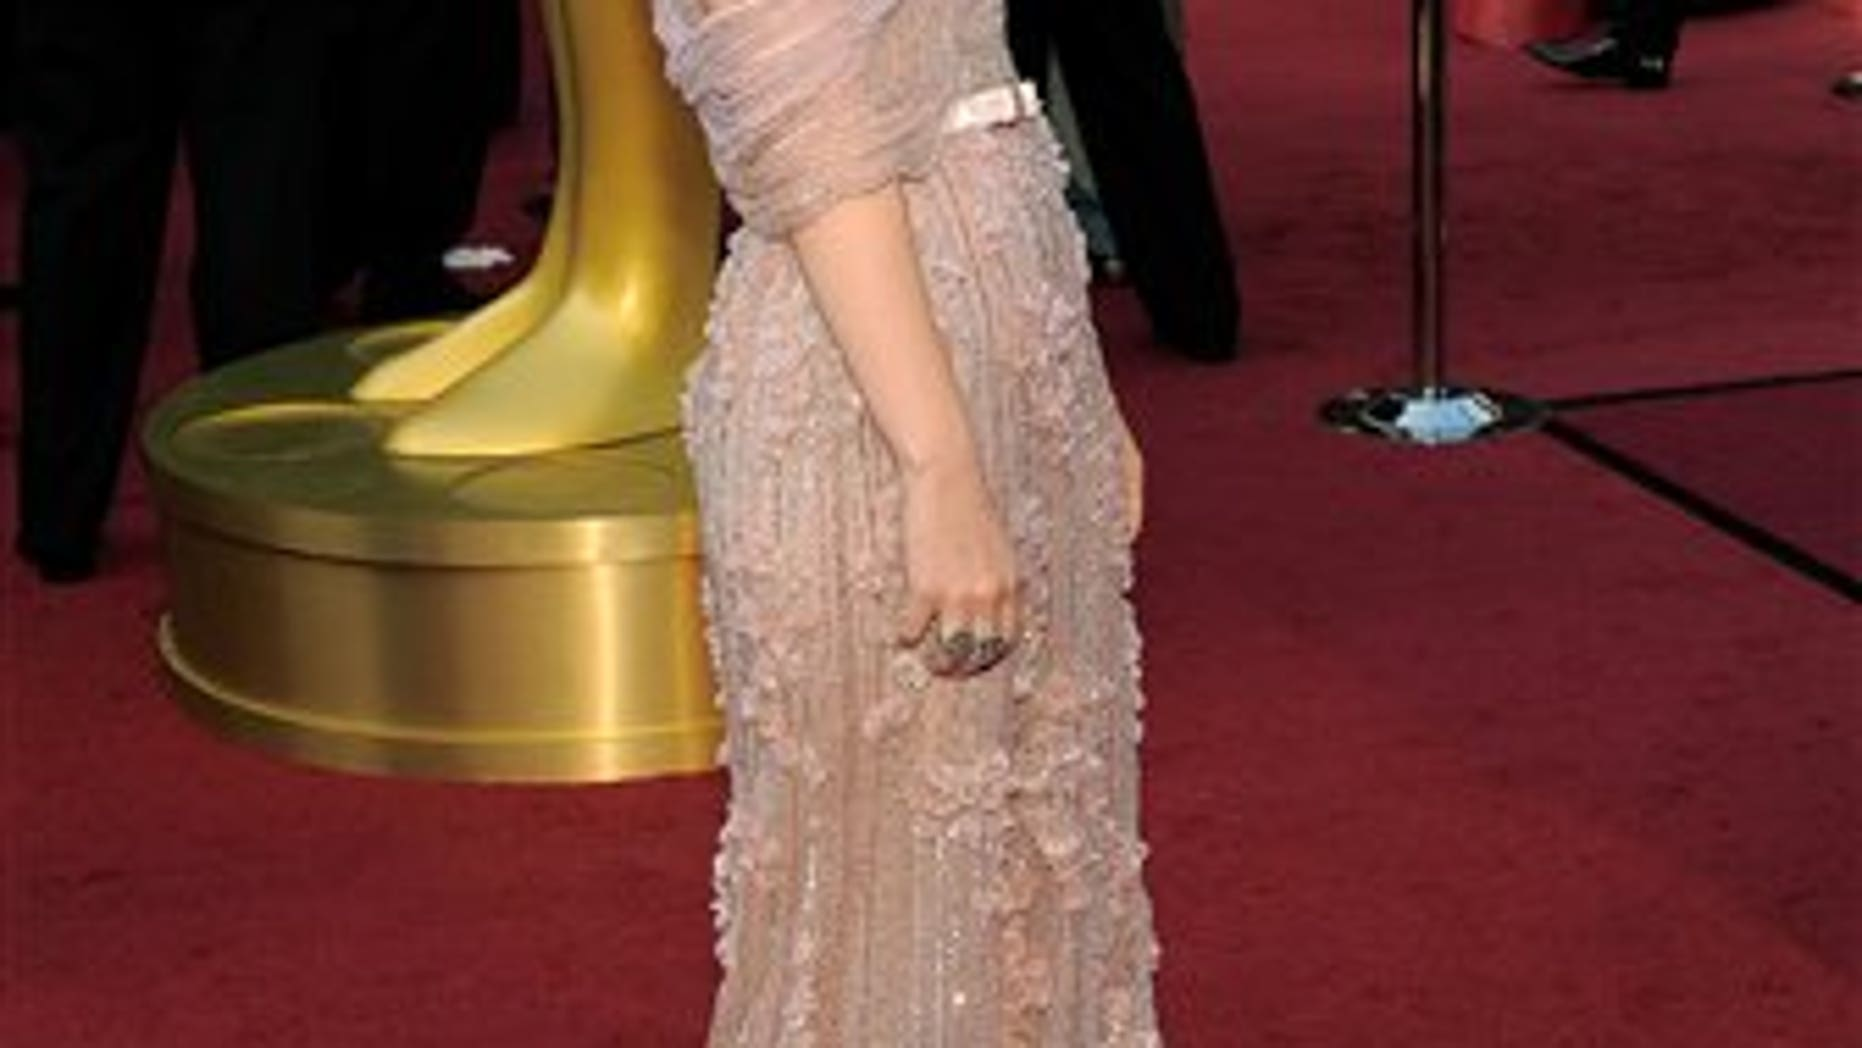 Kate Mara arrives before the 84th Academy Awards on Sunday, Feb. 26, 2012, in the Hollywood section of Los Angeles. (AP Photo/Chris Pizzello)